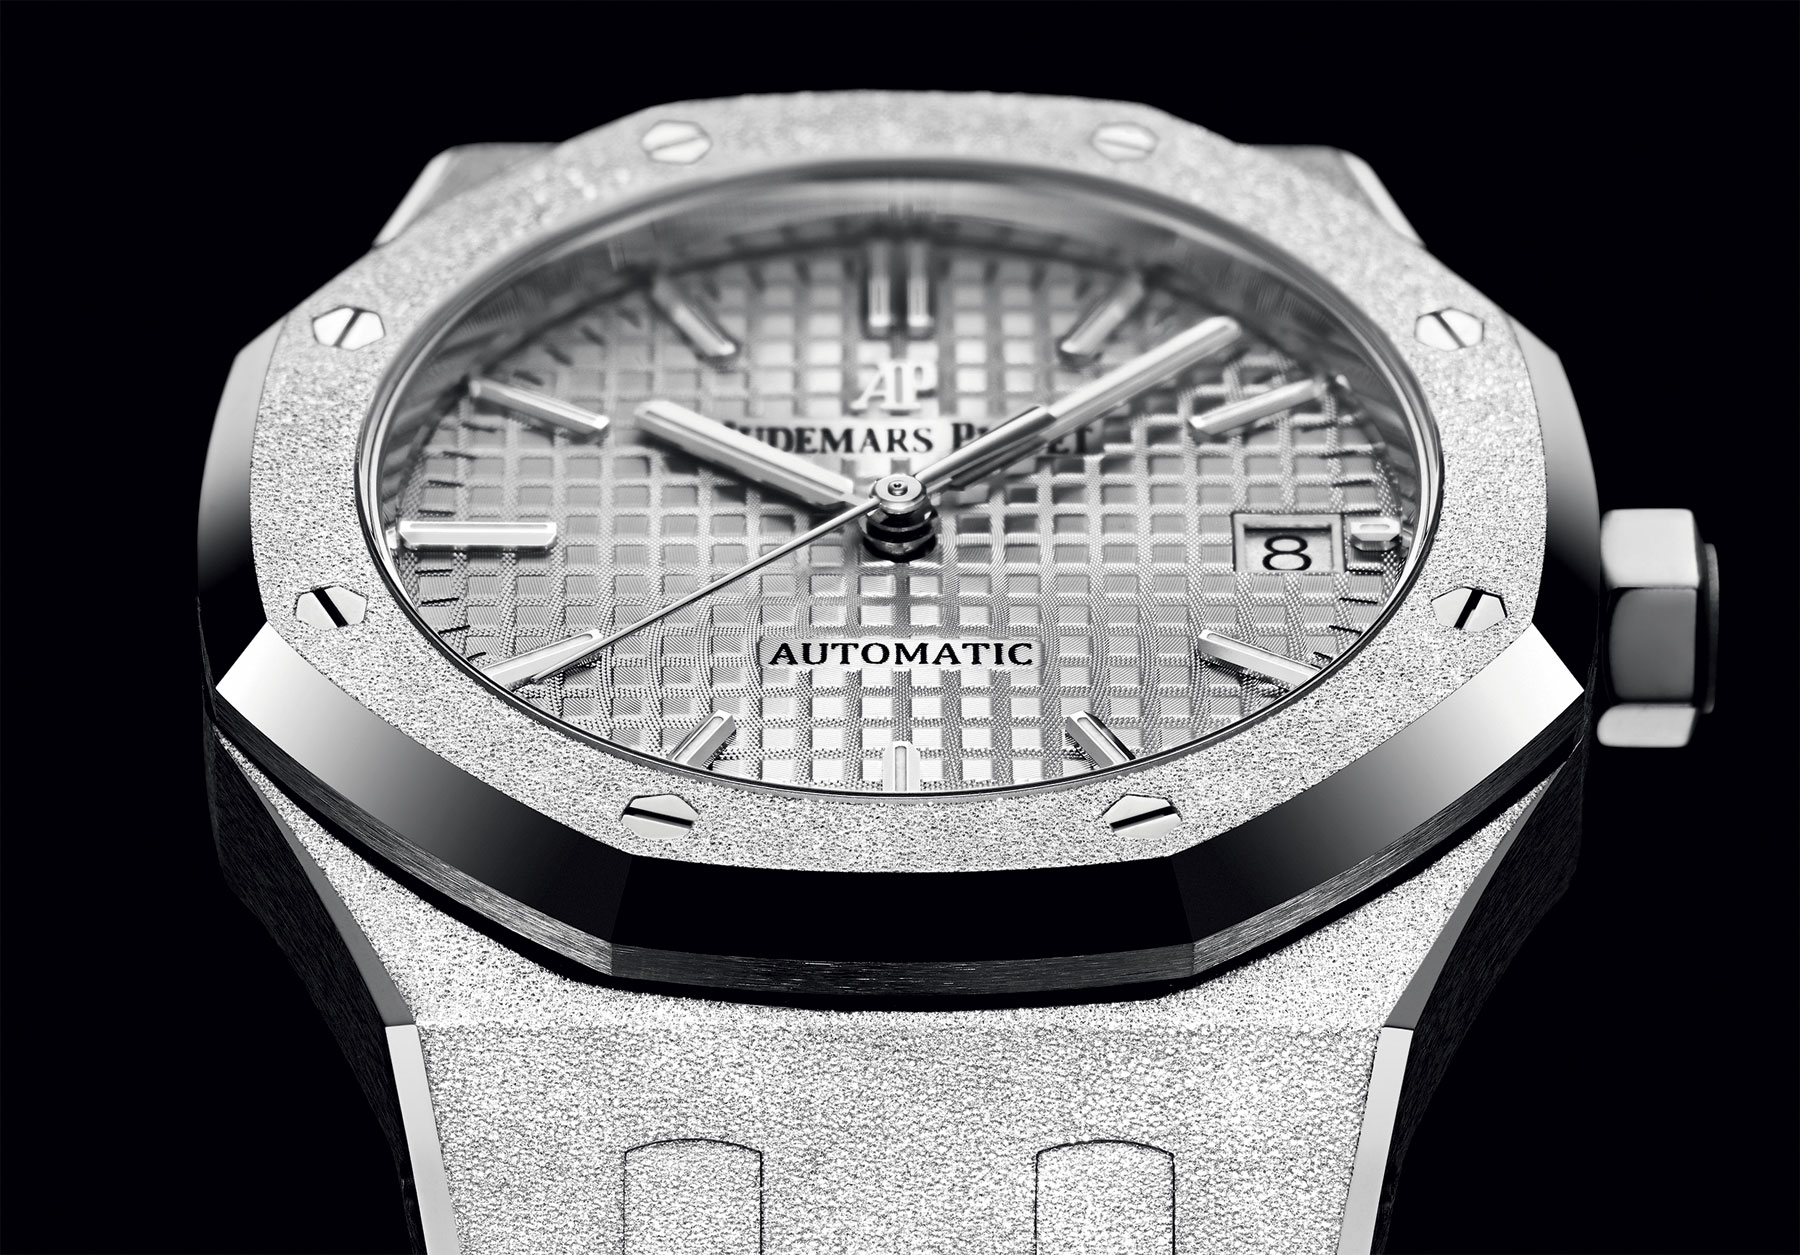 Exploring the Audemars Piguet Royal Oak Frosted Gold 3